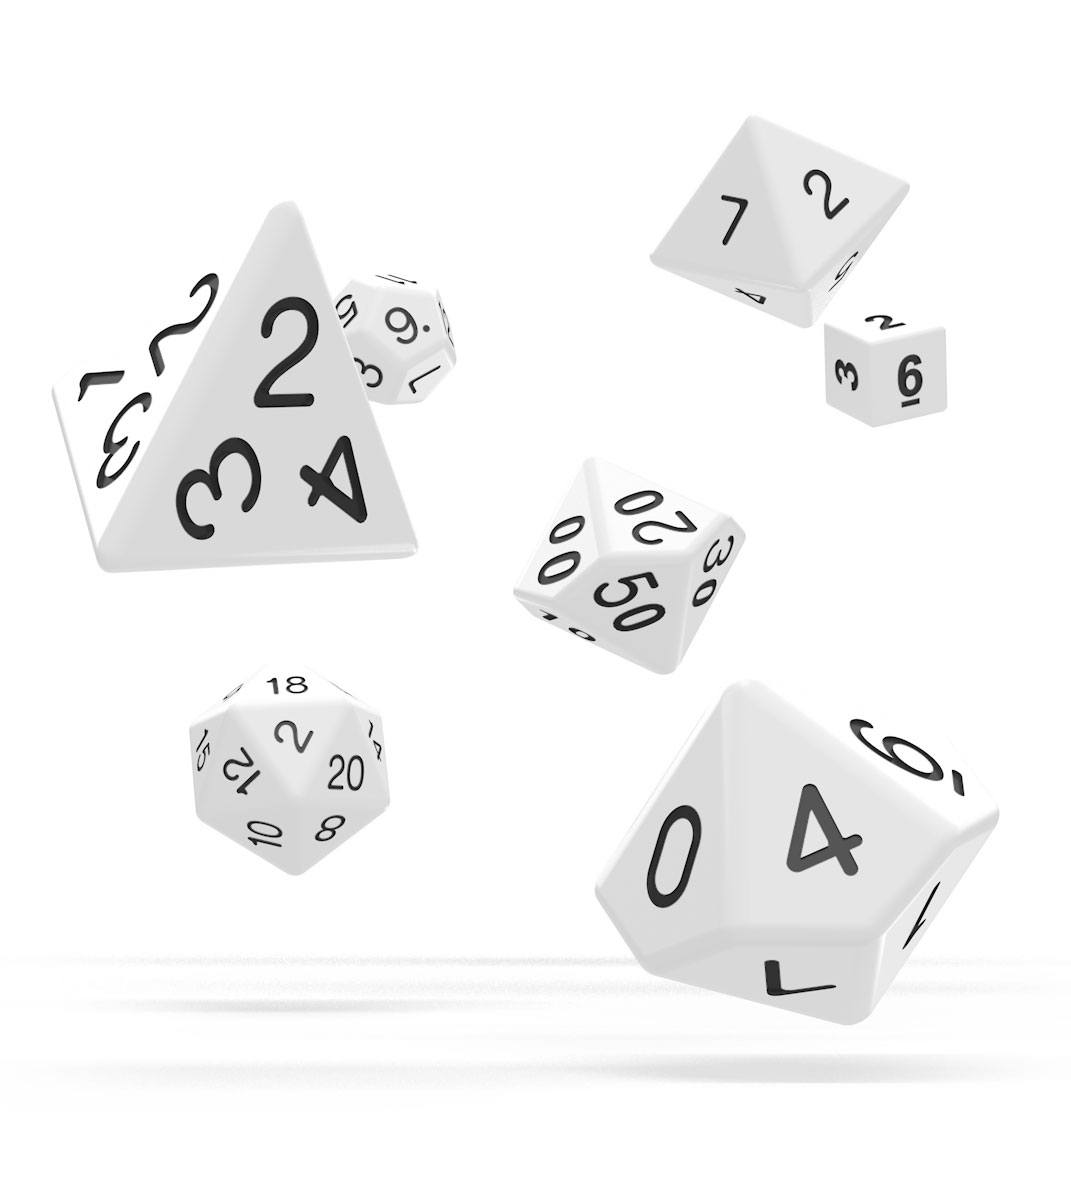 Kocka Set (7) - Oakie Doakie Dice RPG Set Solid - White